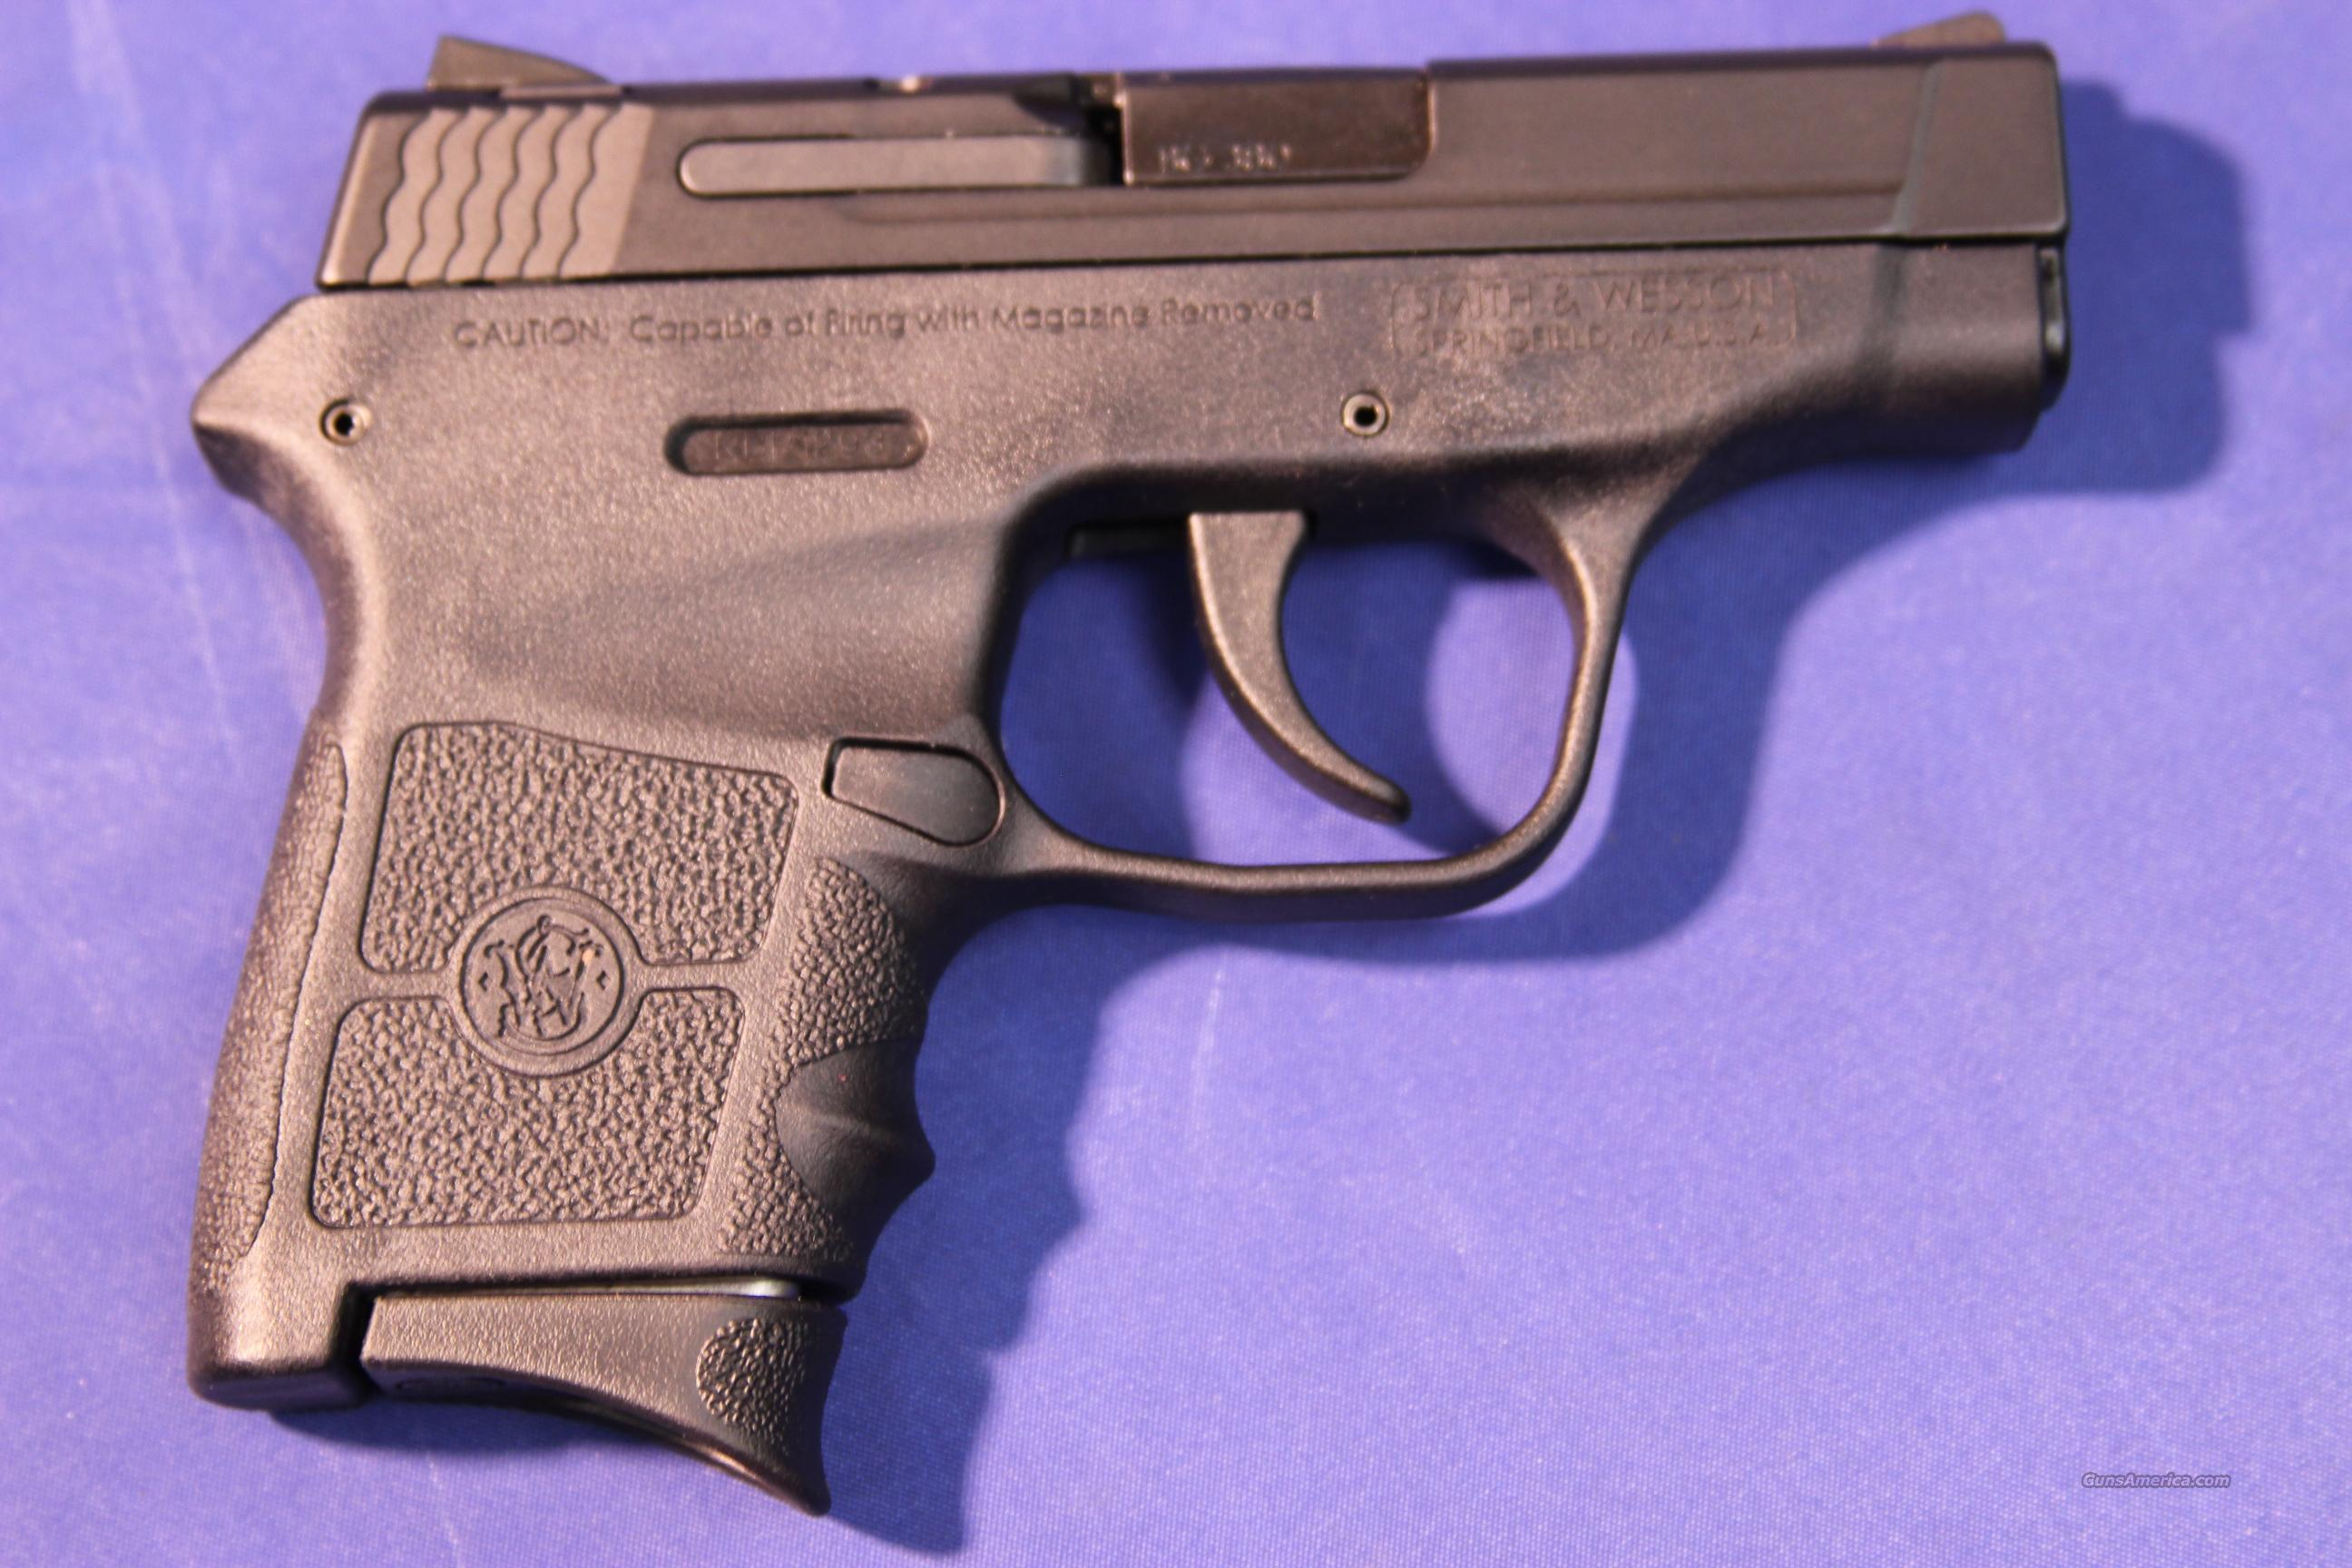 SMITH & WESSON BODYGUARD .380 ACP – NEW!   Guns > Pistols > Smith & Wesson Pistols - Autos > Polymer Frame